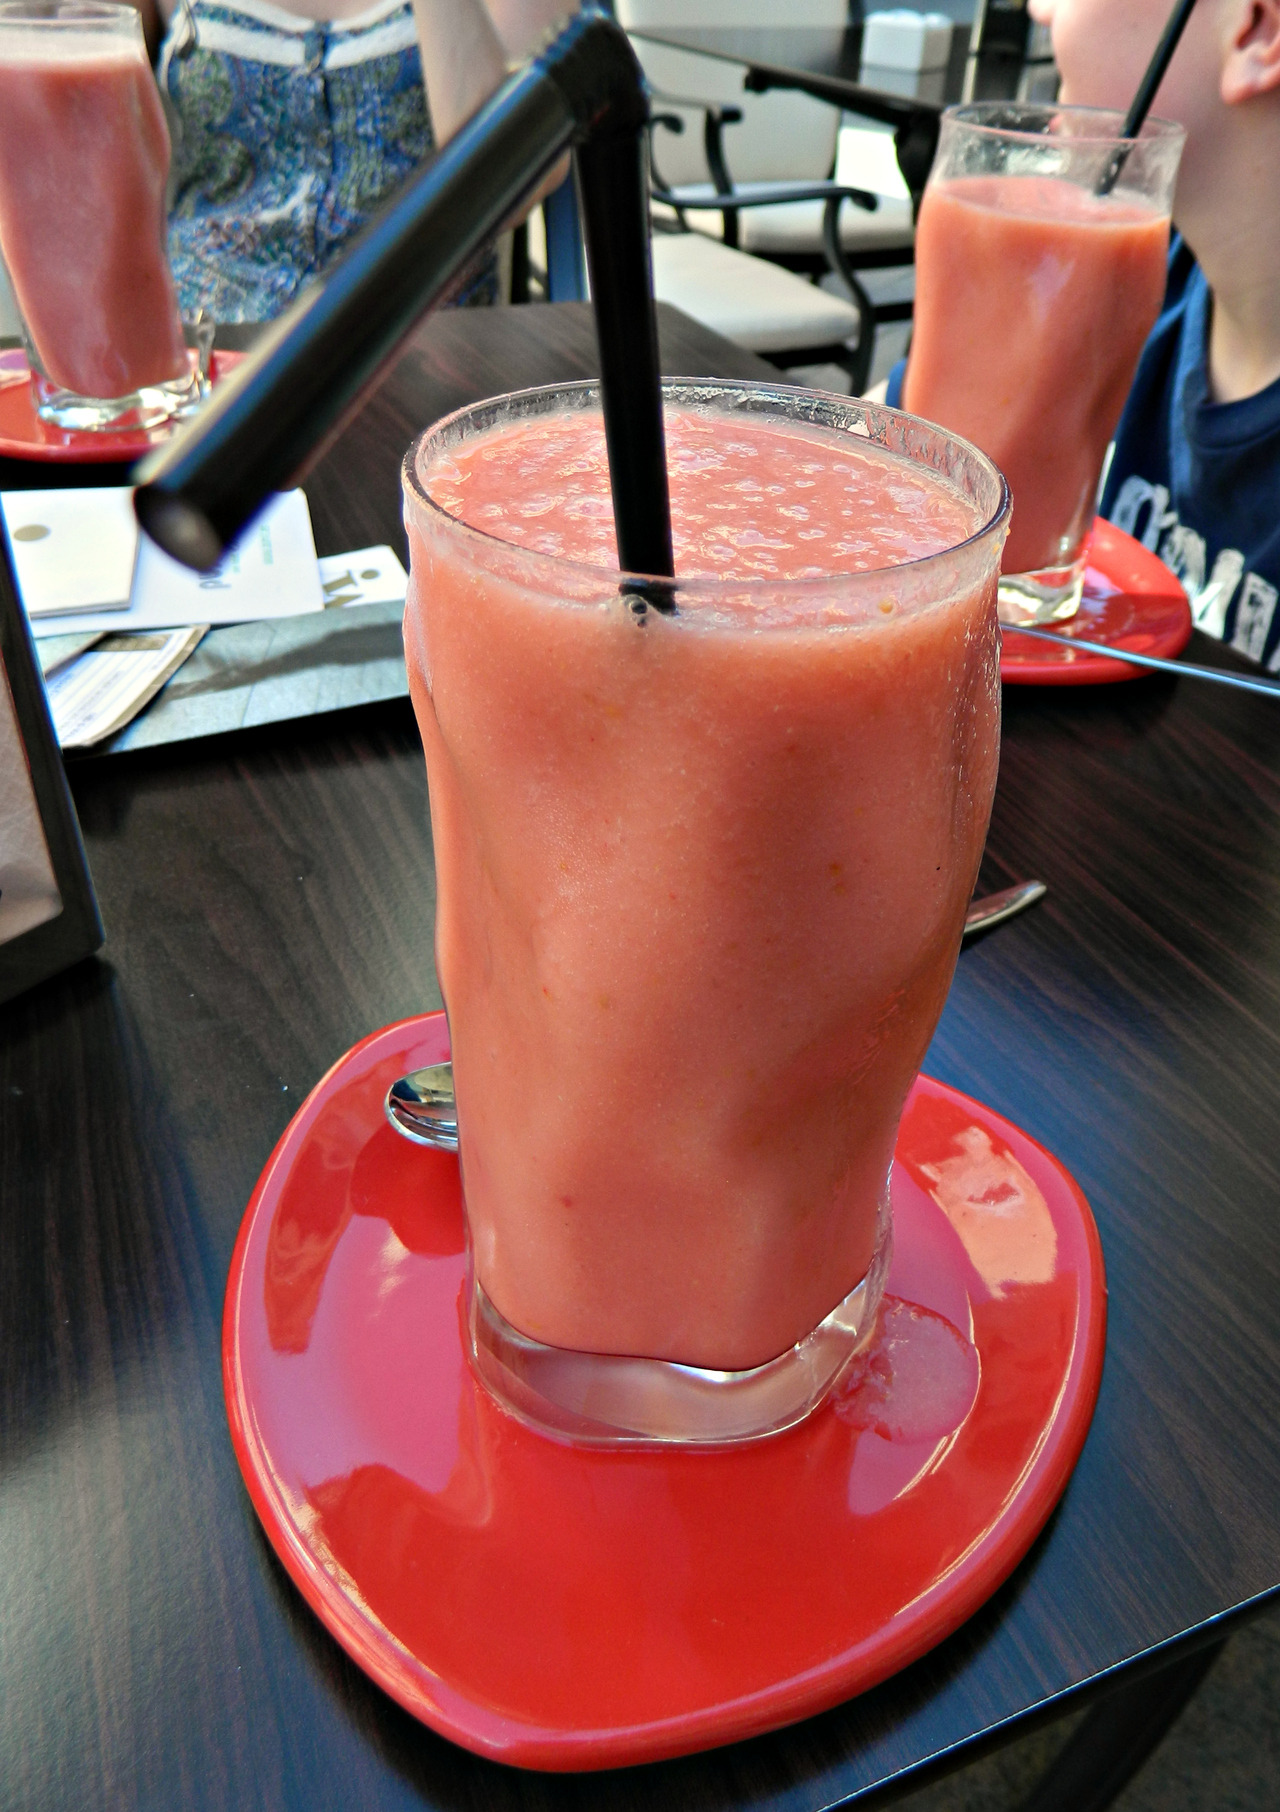 Mango and raspberry smoothie from a little cafe in Murcia. We found a cafe when wandering throughout the streets of Murcia that does smoothies WITHOUT yoghurt - so of course had to stop there! This was refreshing and delicious and yum. :)